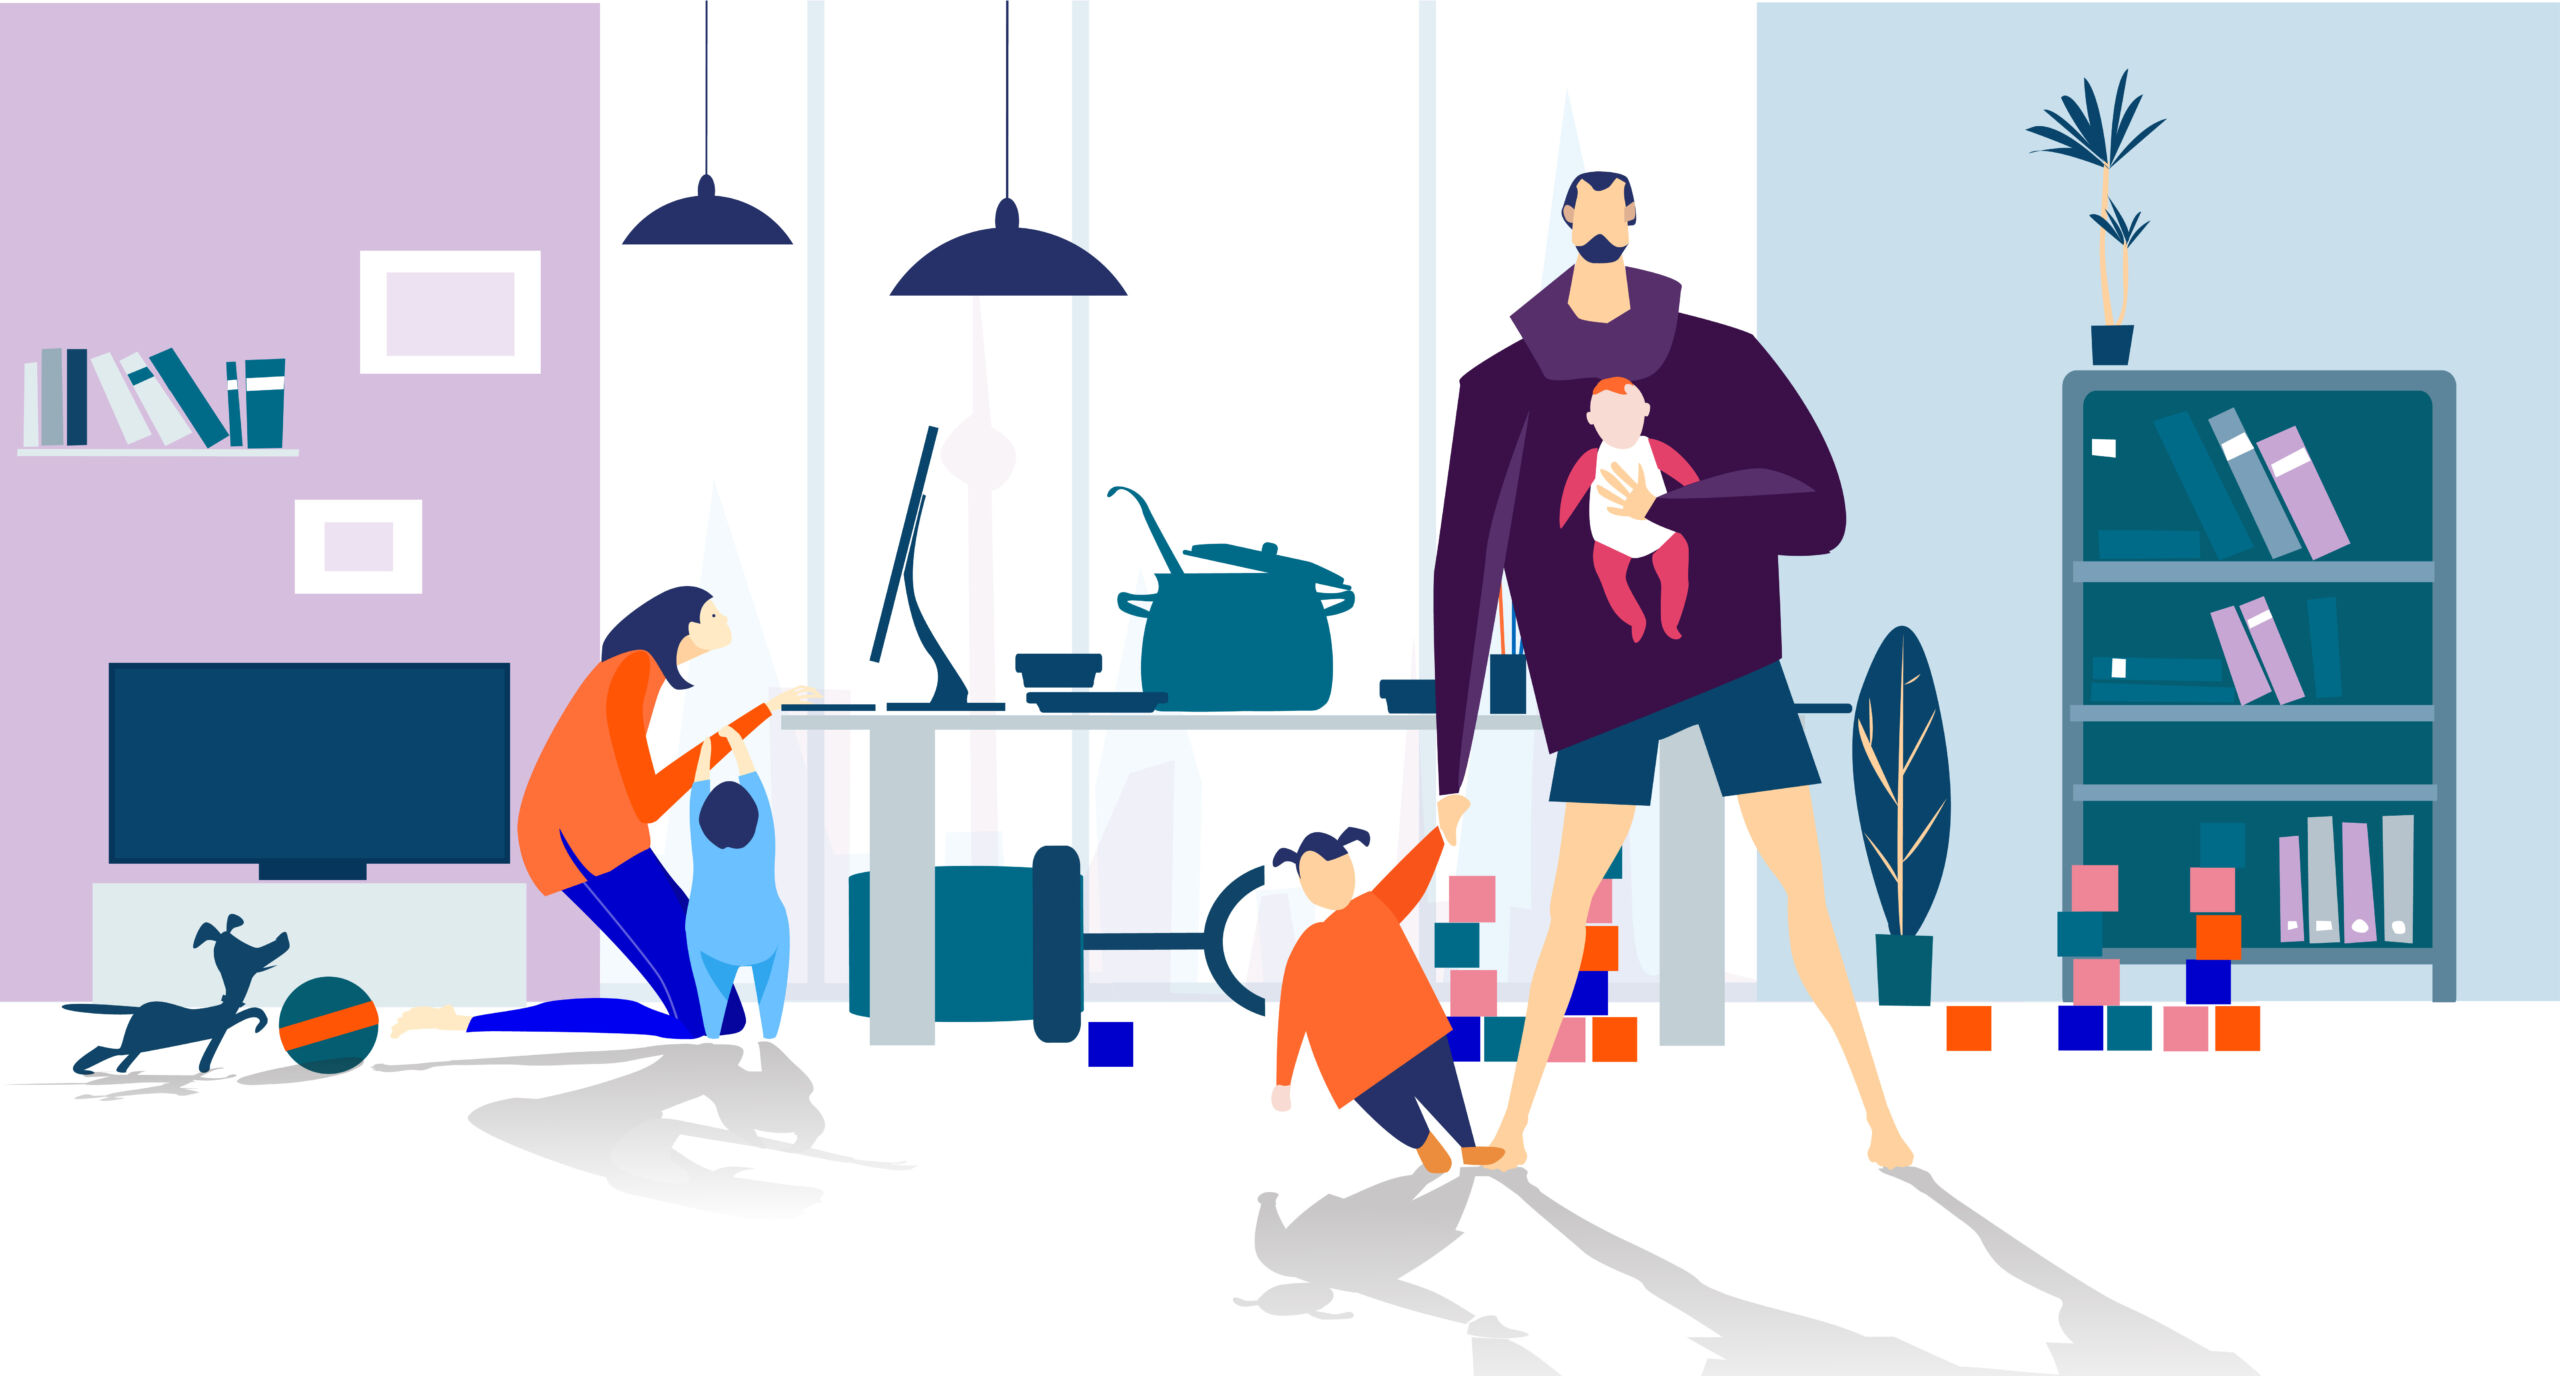 working from home concept illustration. lockdown, family stuck in home with kids during quarantine. plan your day. freelance. work from home. home office, remote working.